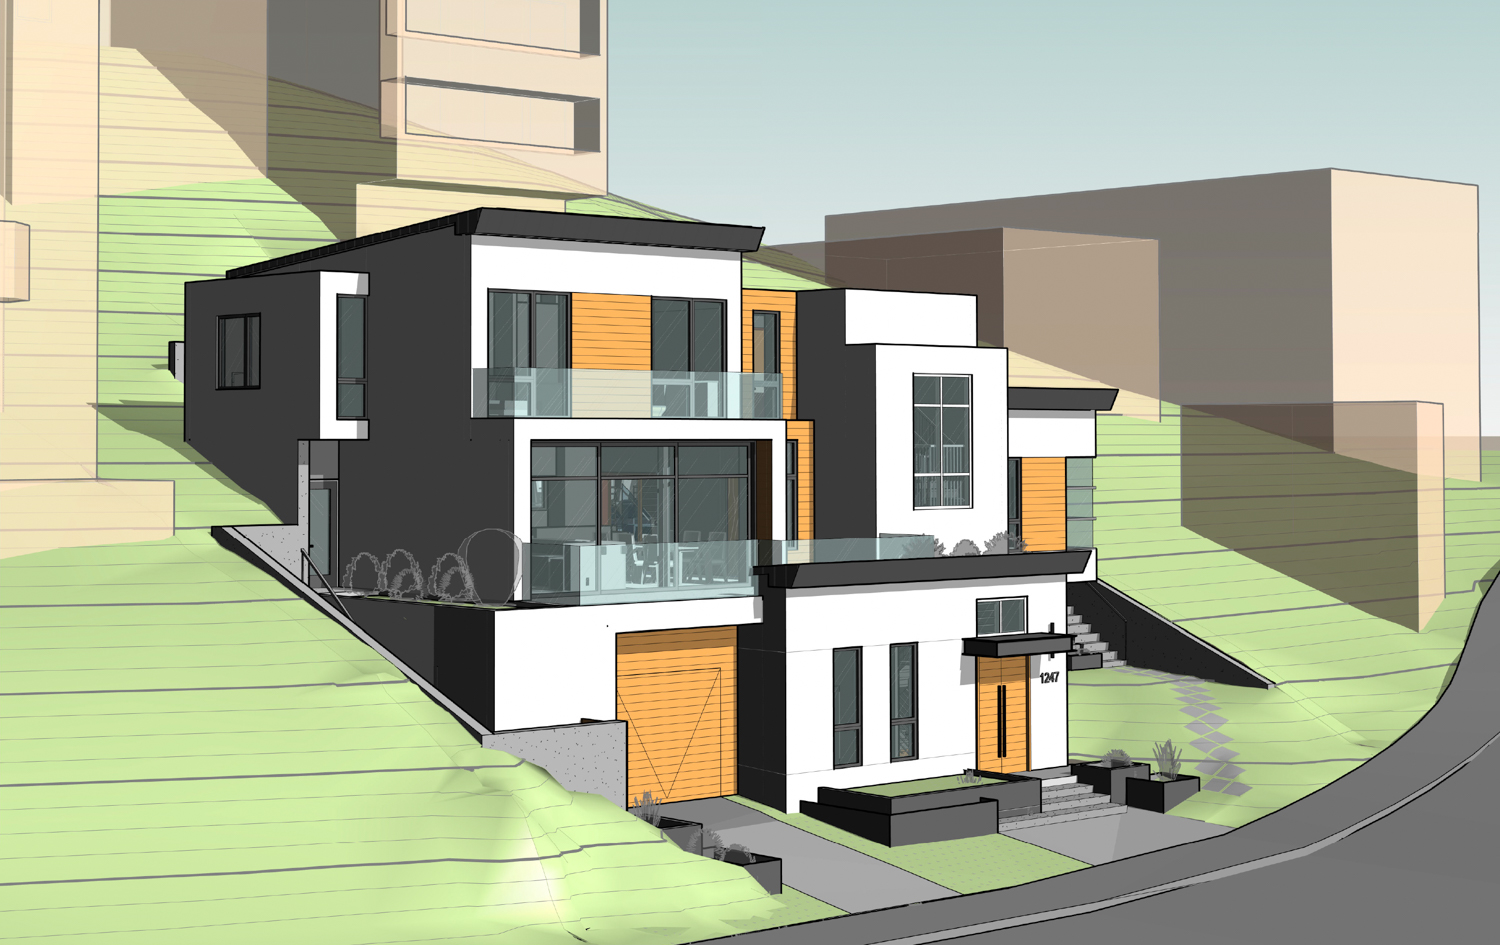 1247 Bosworth Street hillside building, rendering by Martinkovic Milford Architects